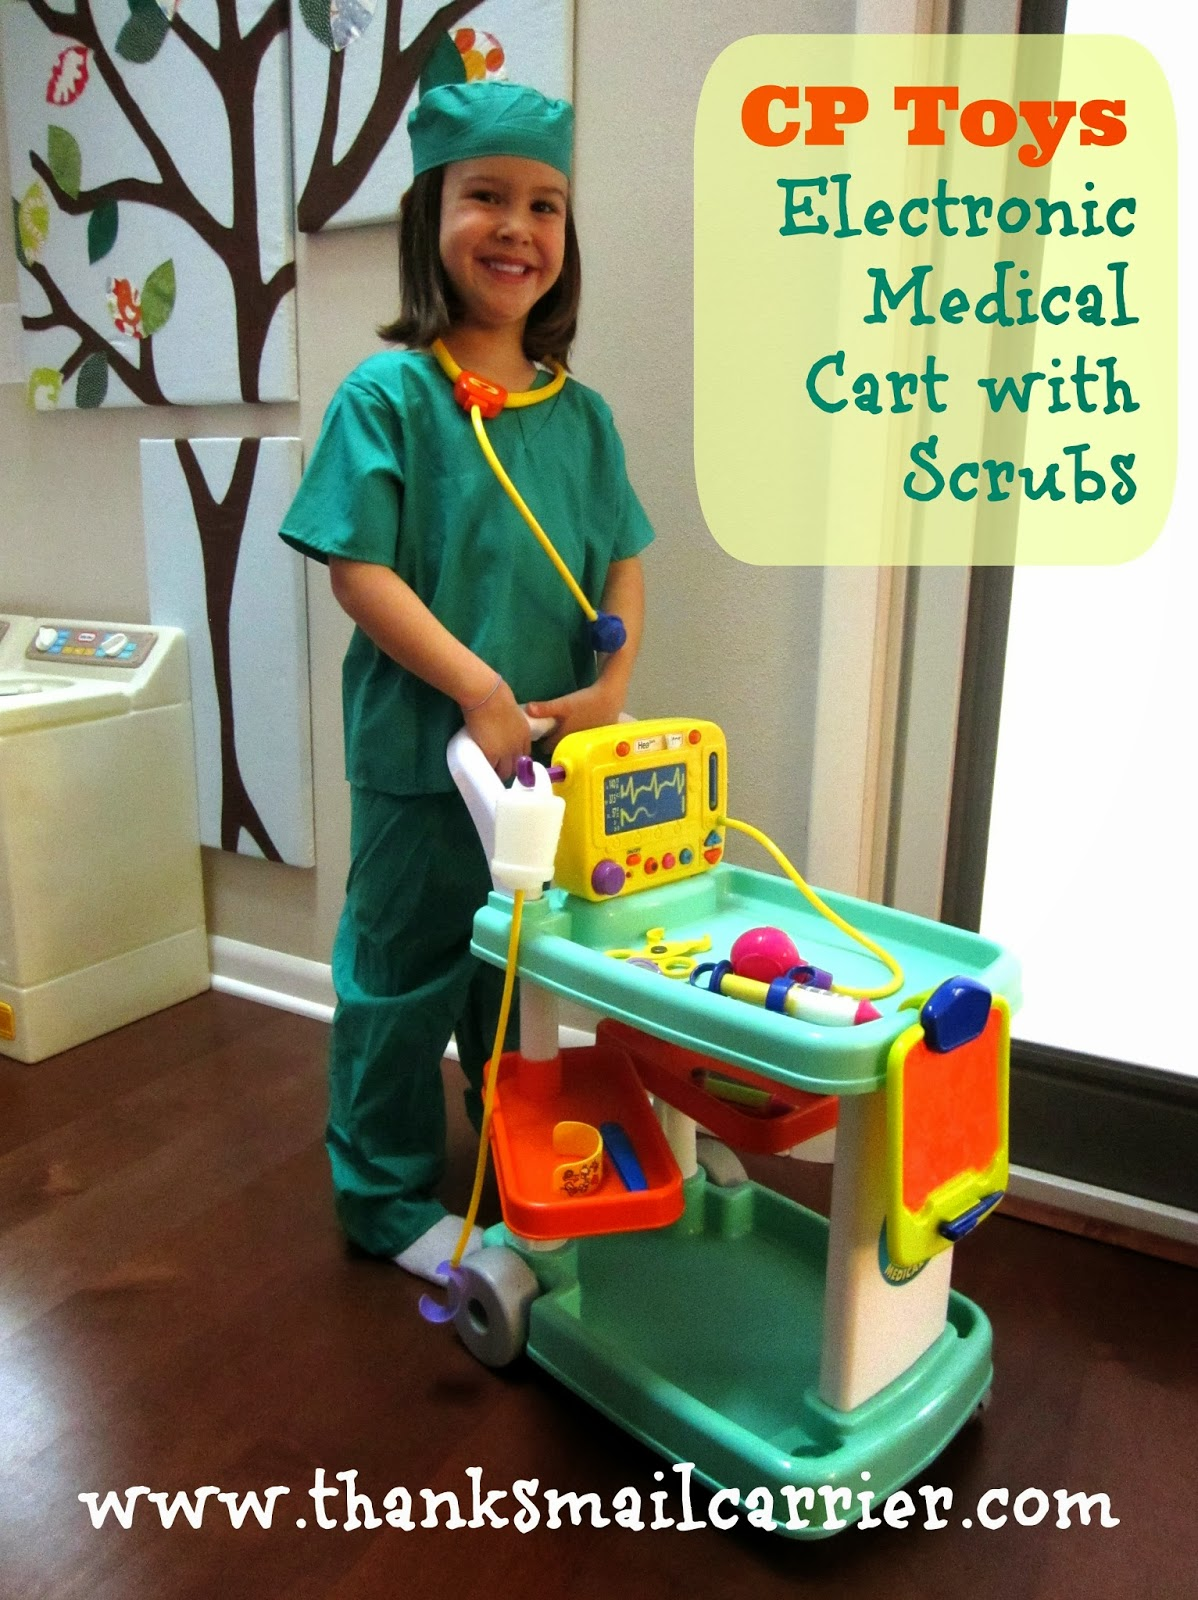 CP Toys Electronic Medical Cart with Scrubs